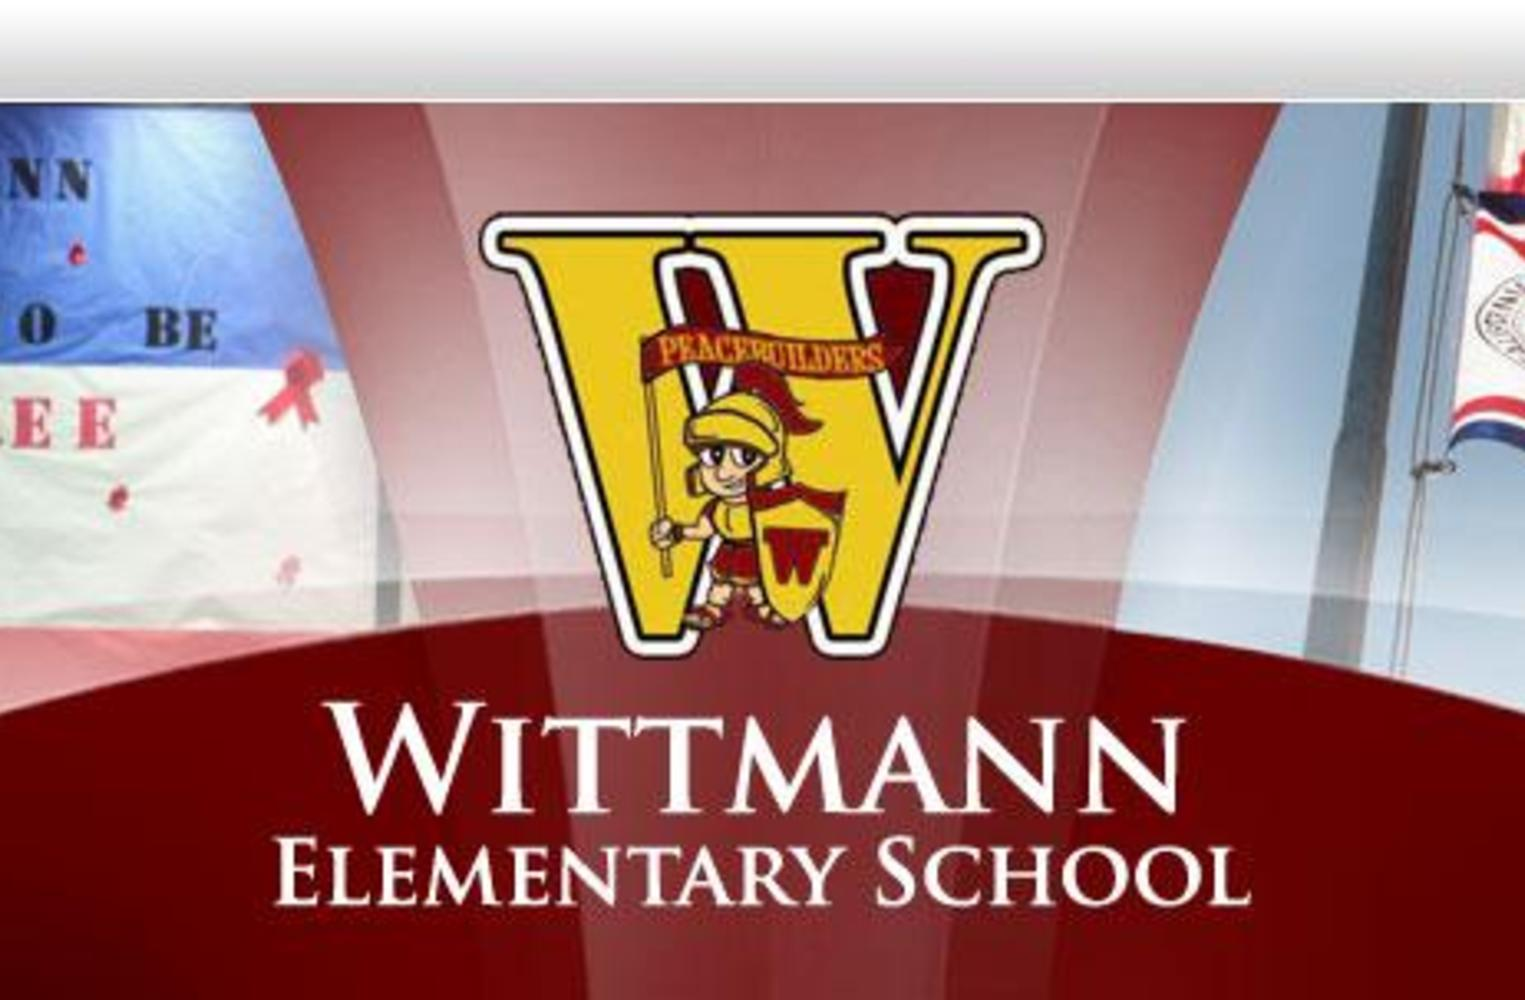 Photo of Wittmann Logo, a Drug Free Poster, and flags in front of the school